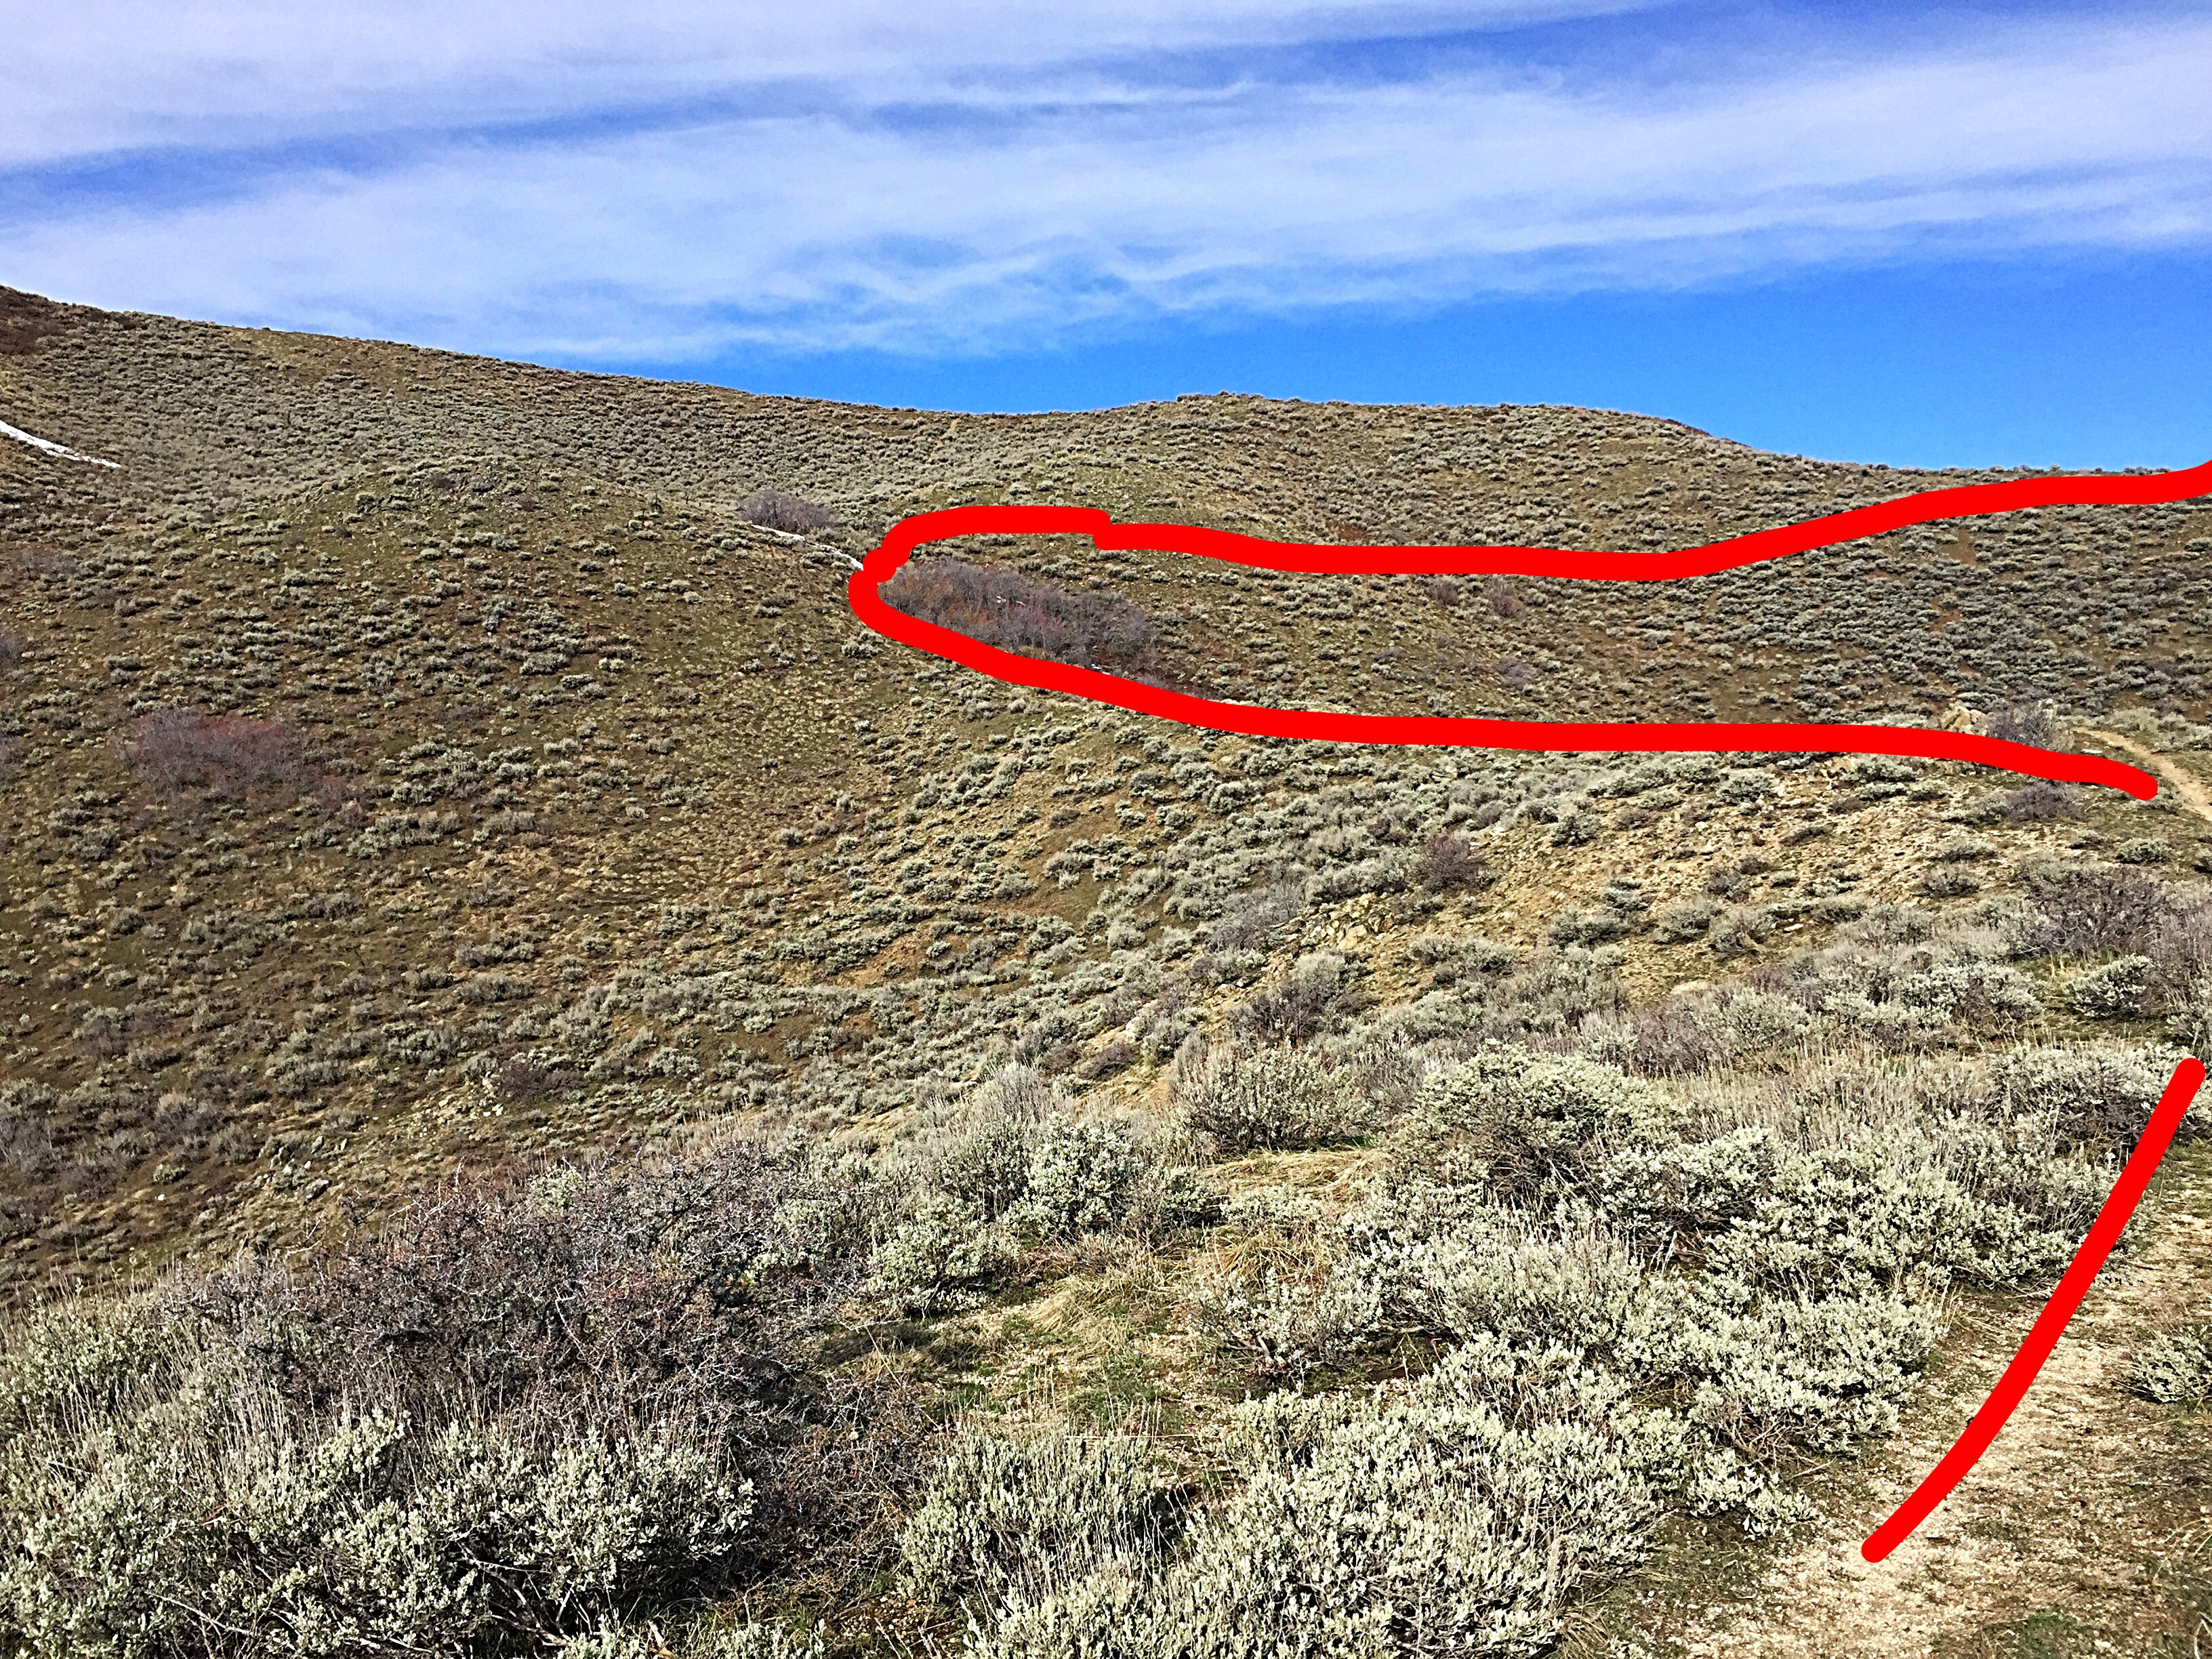 The red line shows the trail leading up to the grove of trees, and then the bypass leads across the ridge.